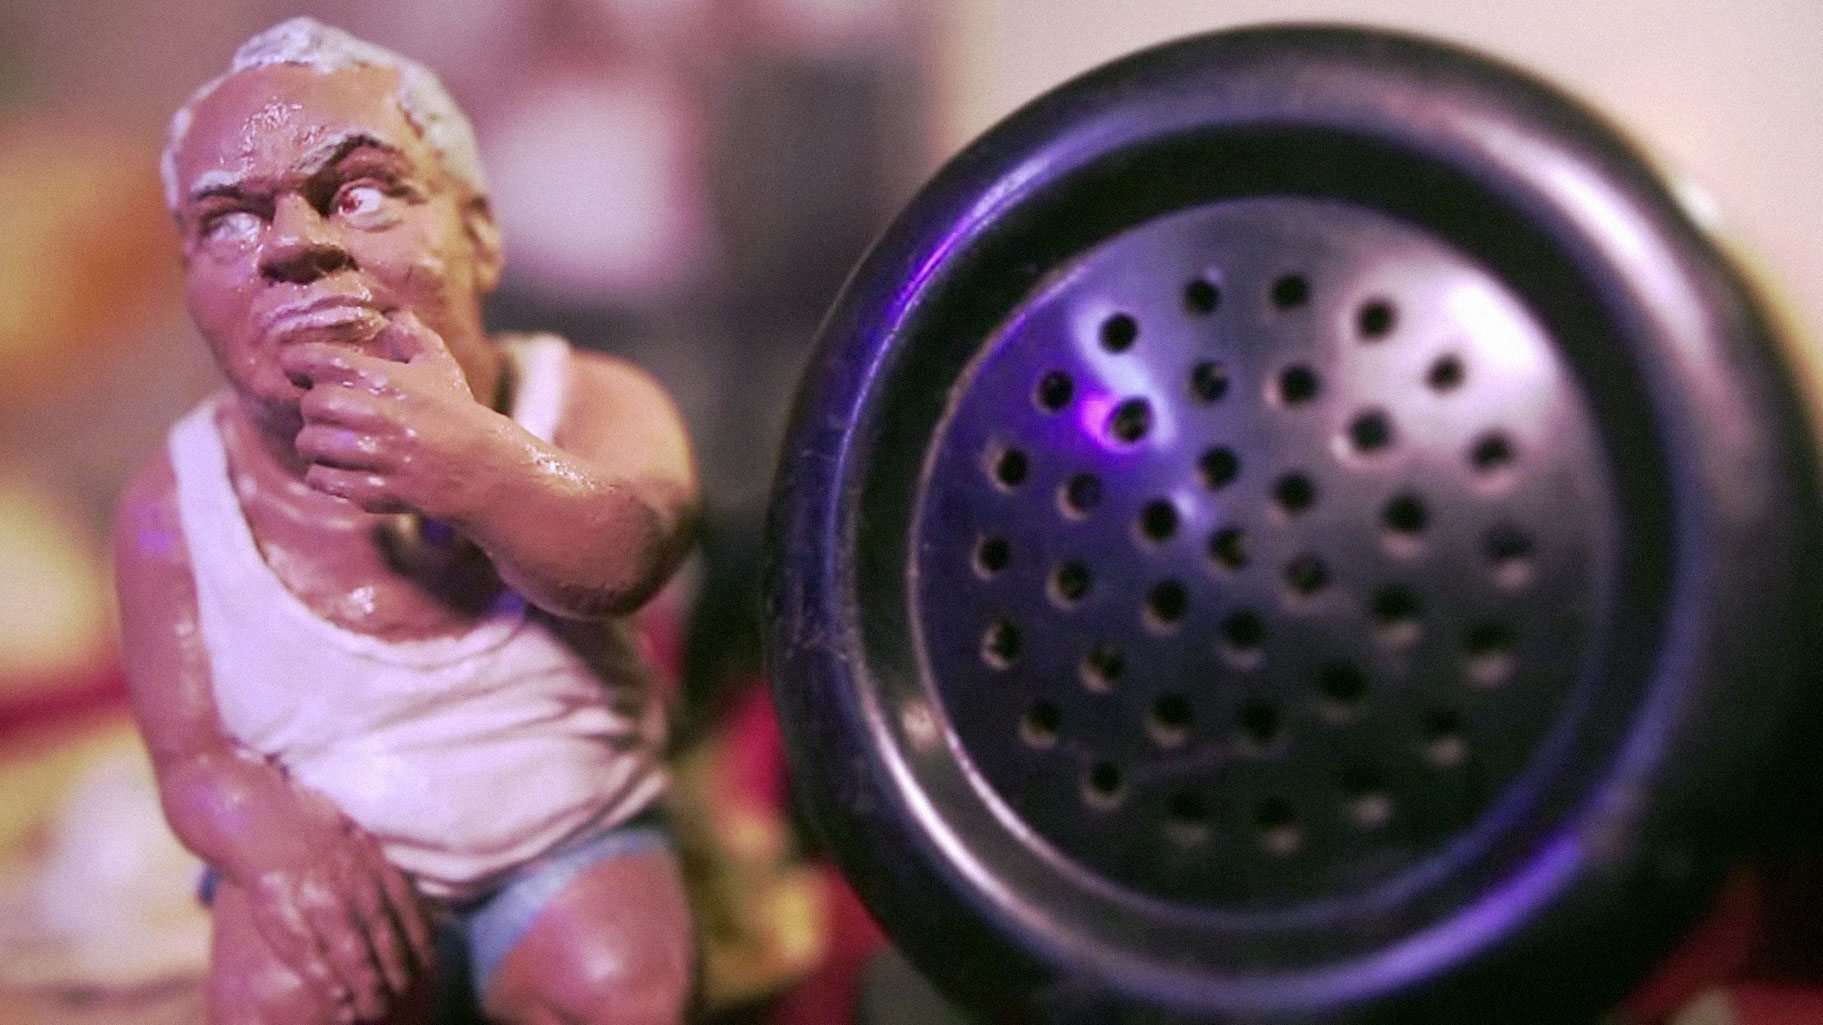 Voicemails From Grandpa And 3-D Printing Power This Unusual Comedy Short